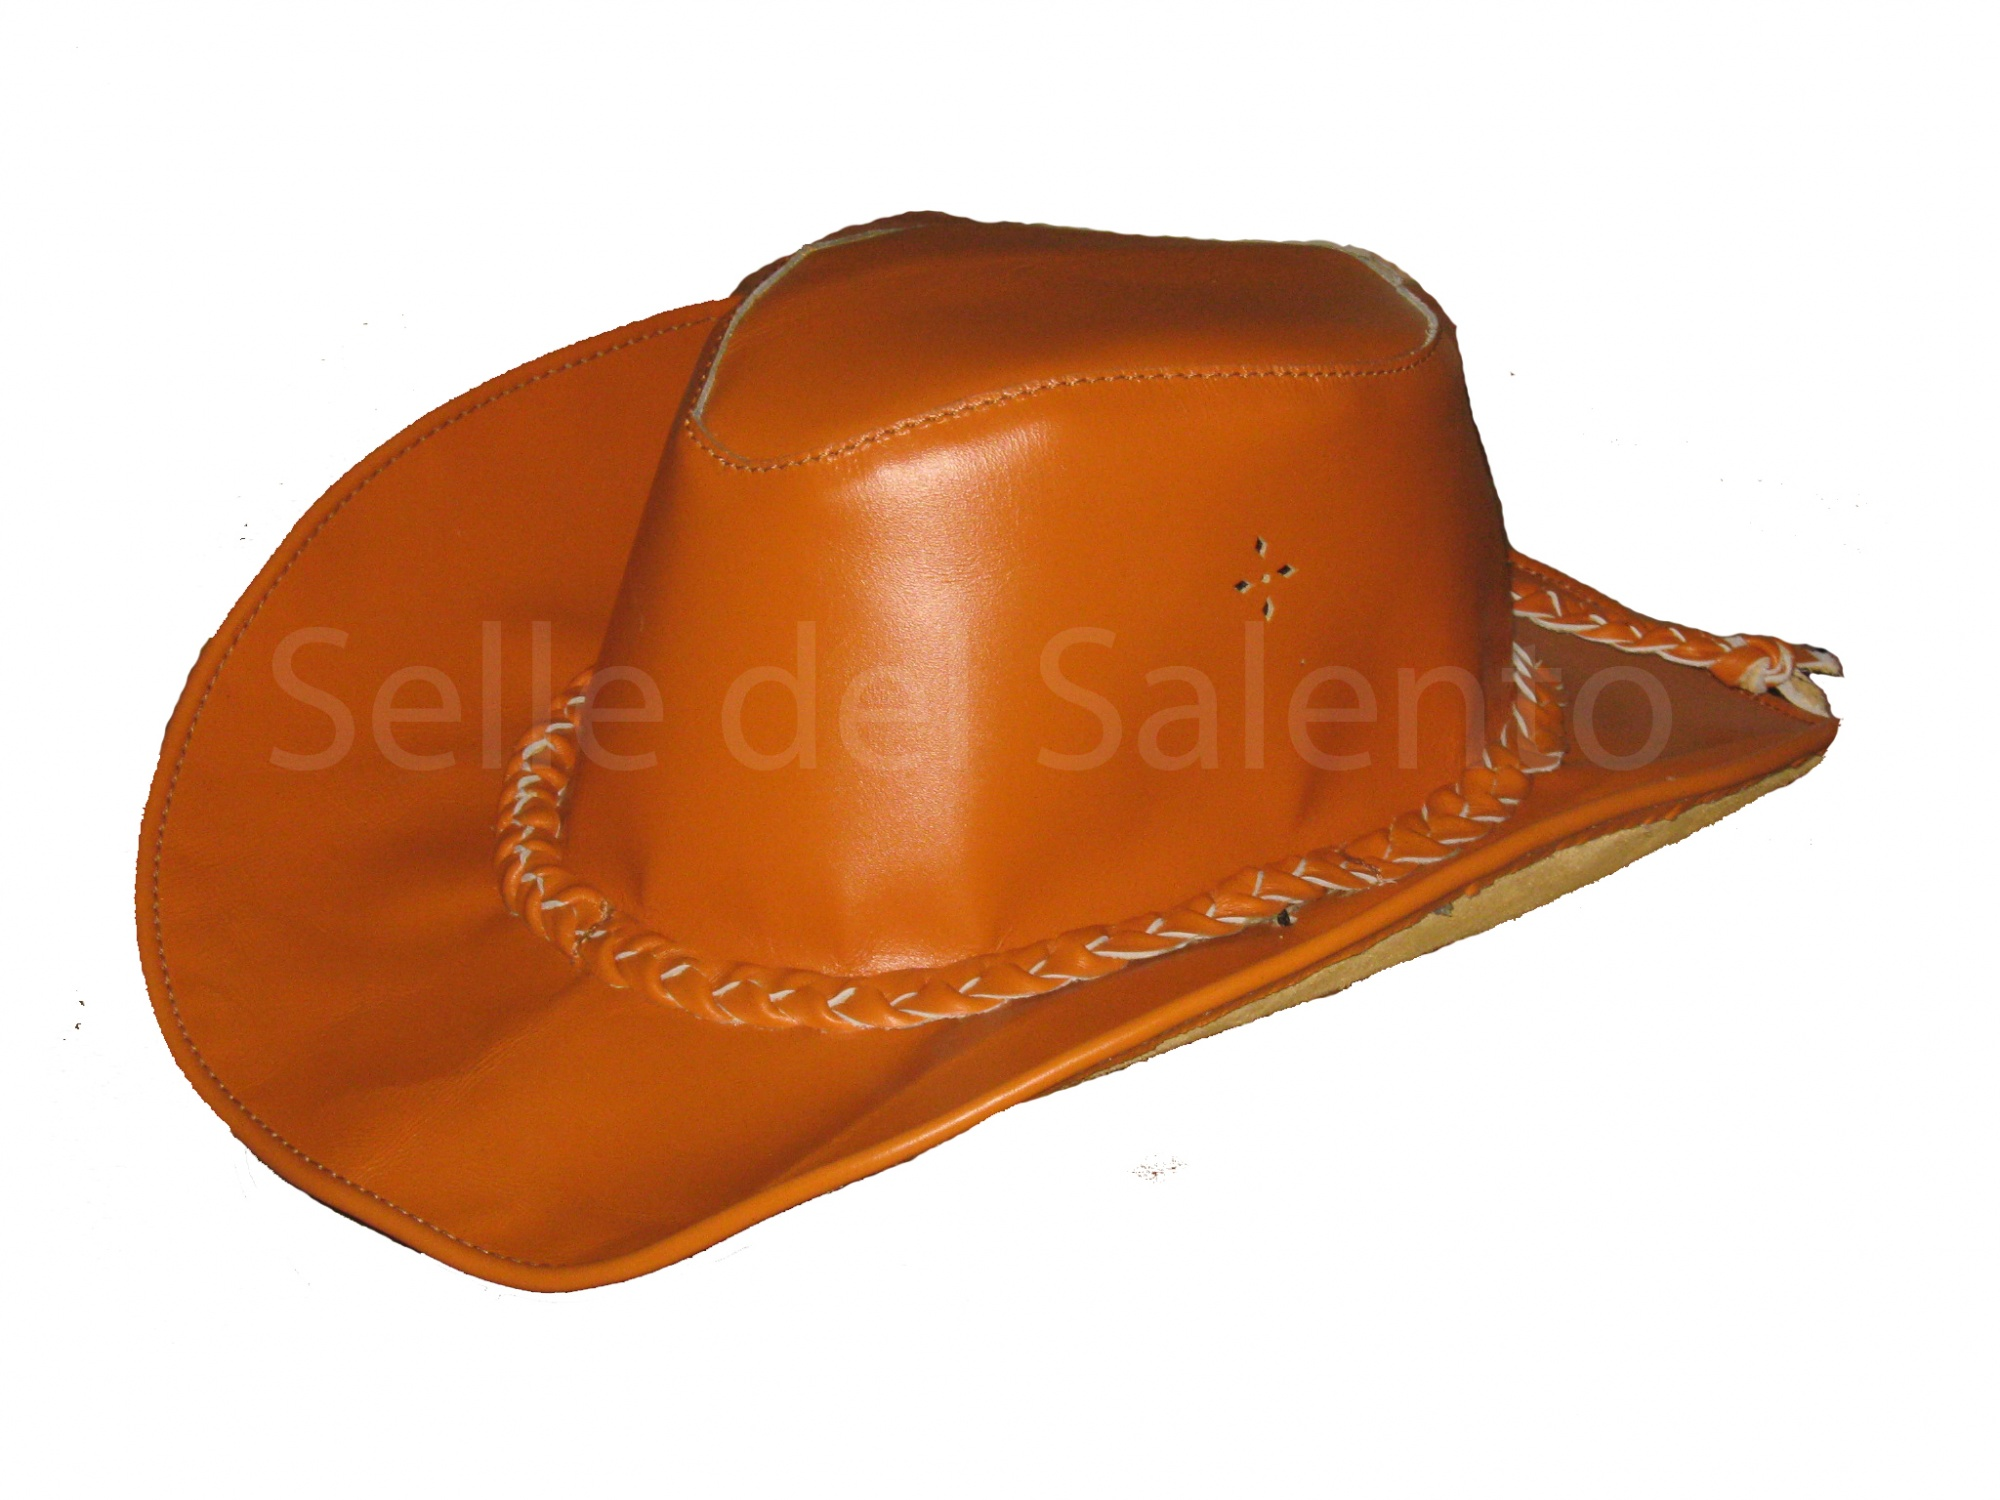 Cappello Western in pelle Cowboy cowntry hat cap chapeau hut skin leather  Haut b76a165fbf66